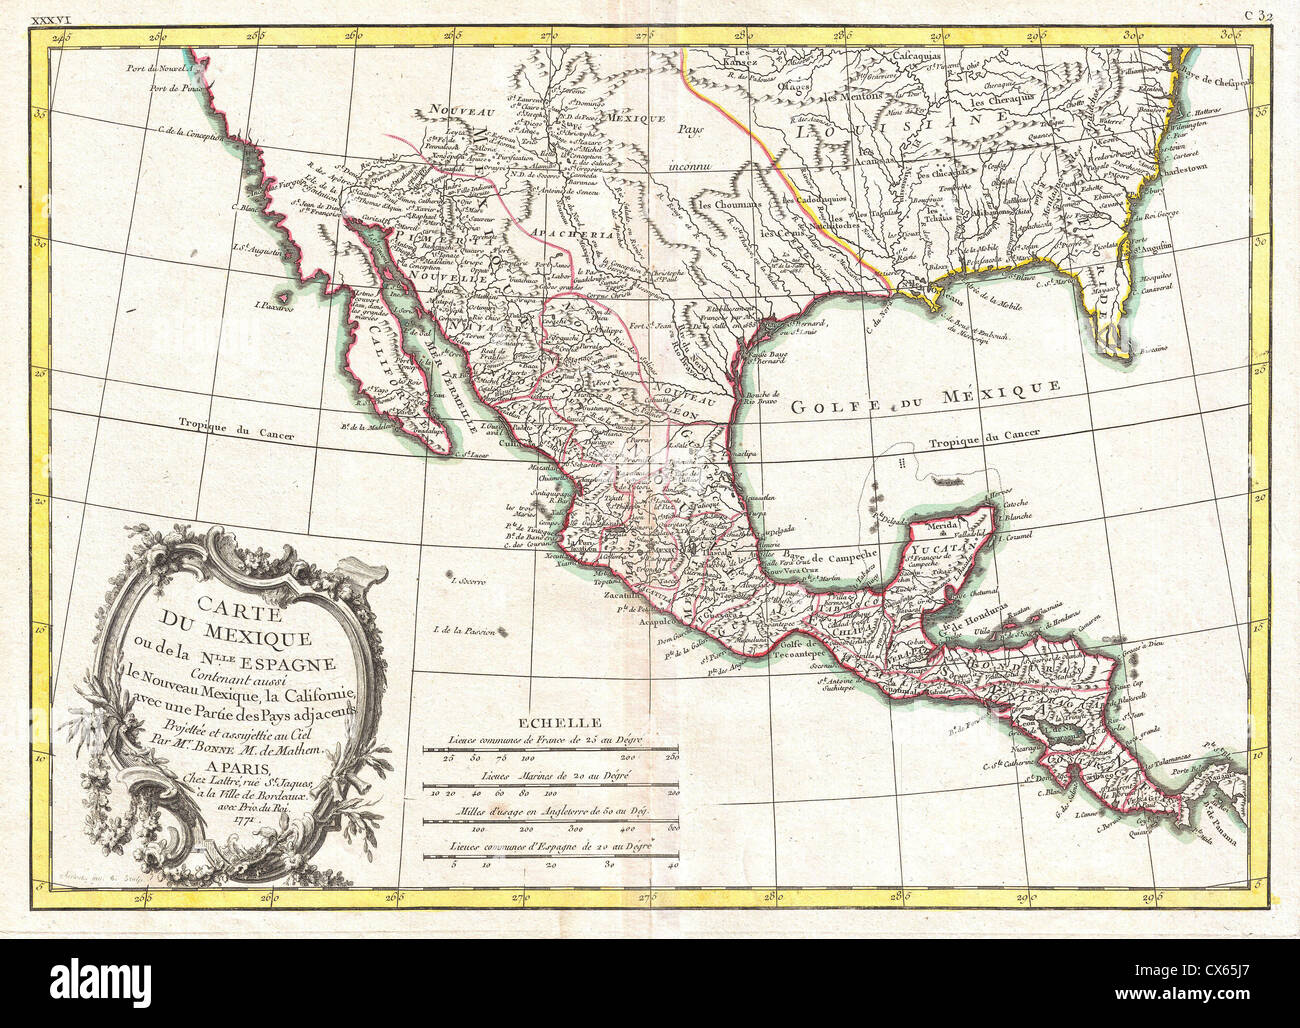 Map Of Texas And Florida.1771 Bonne Map Of Mexico Texas Louisiana And Florida Stock Photo